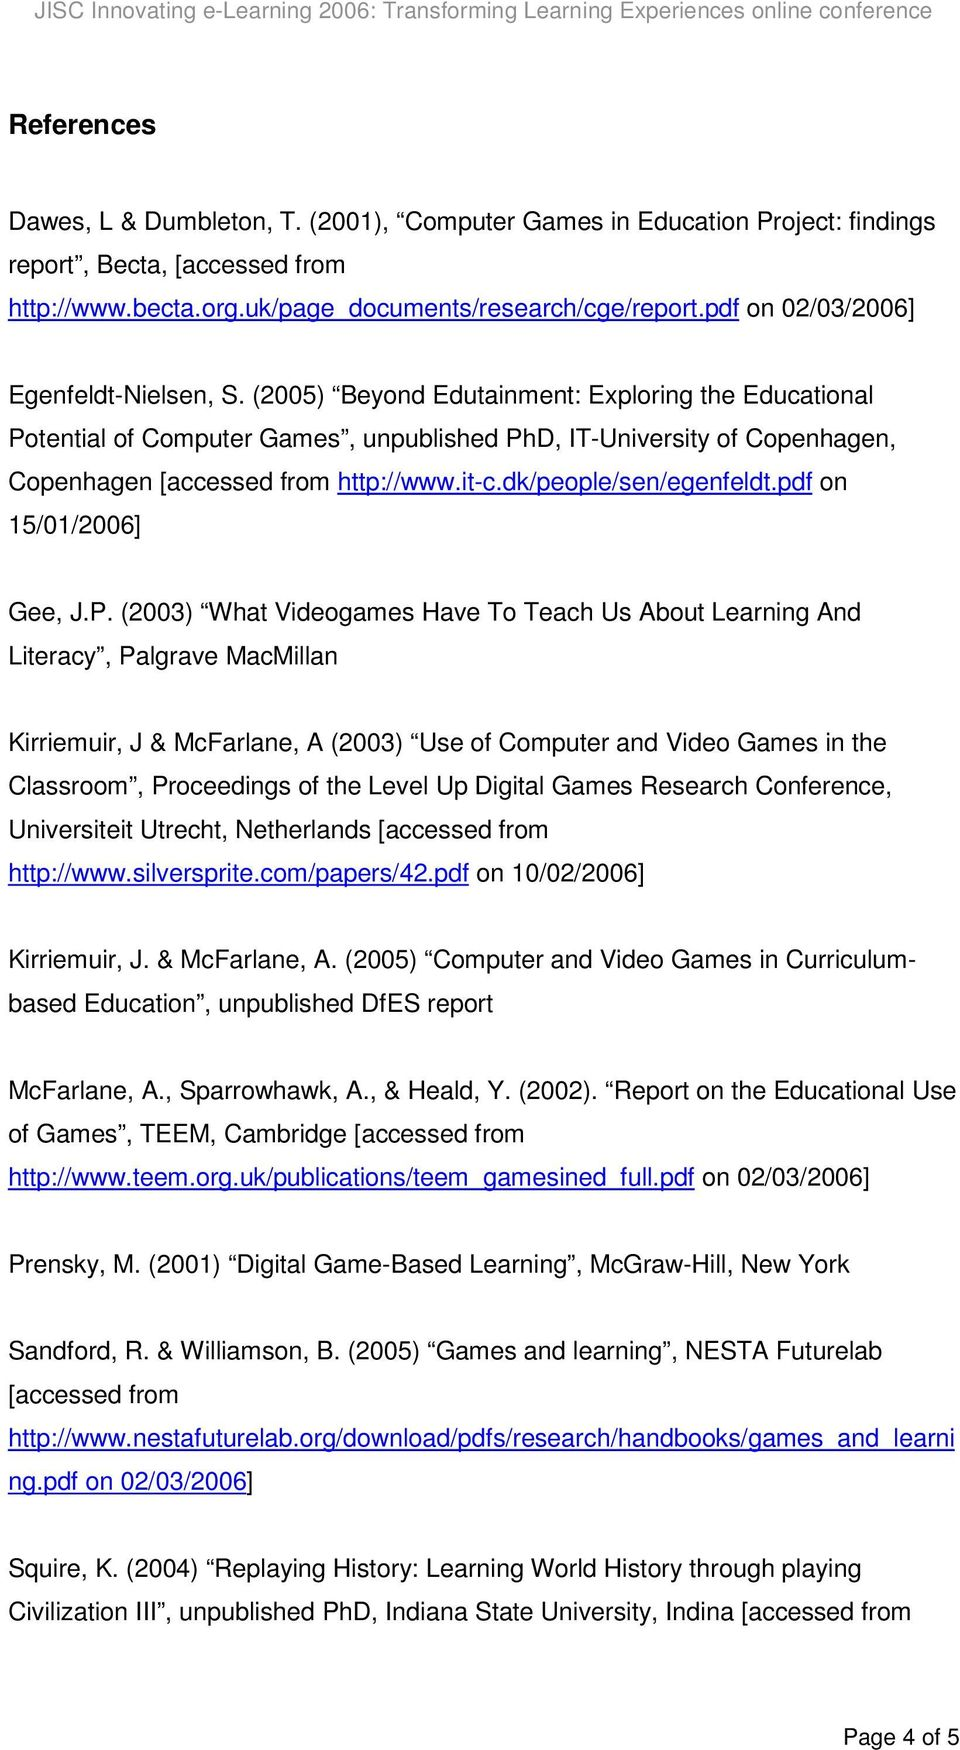 (2005) Beyond Edutainment: Exploring the Educational Potential of Computer Games, unpublished PhD, IT-University of Copenhagen, Copenhagen [accessed from http://www.it-c.dk/people/sen/egenfeldt.